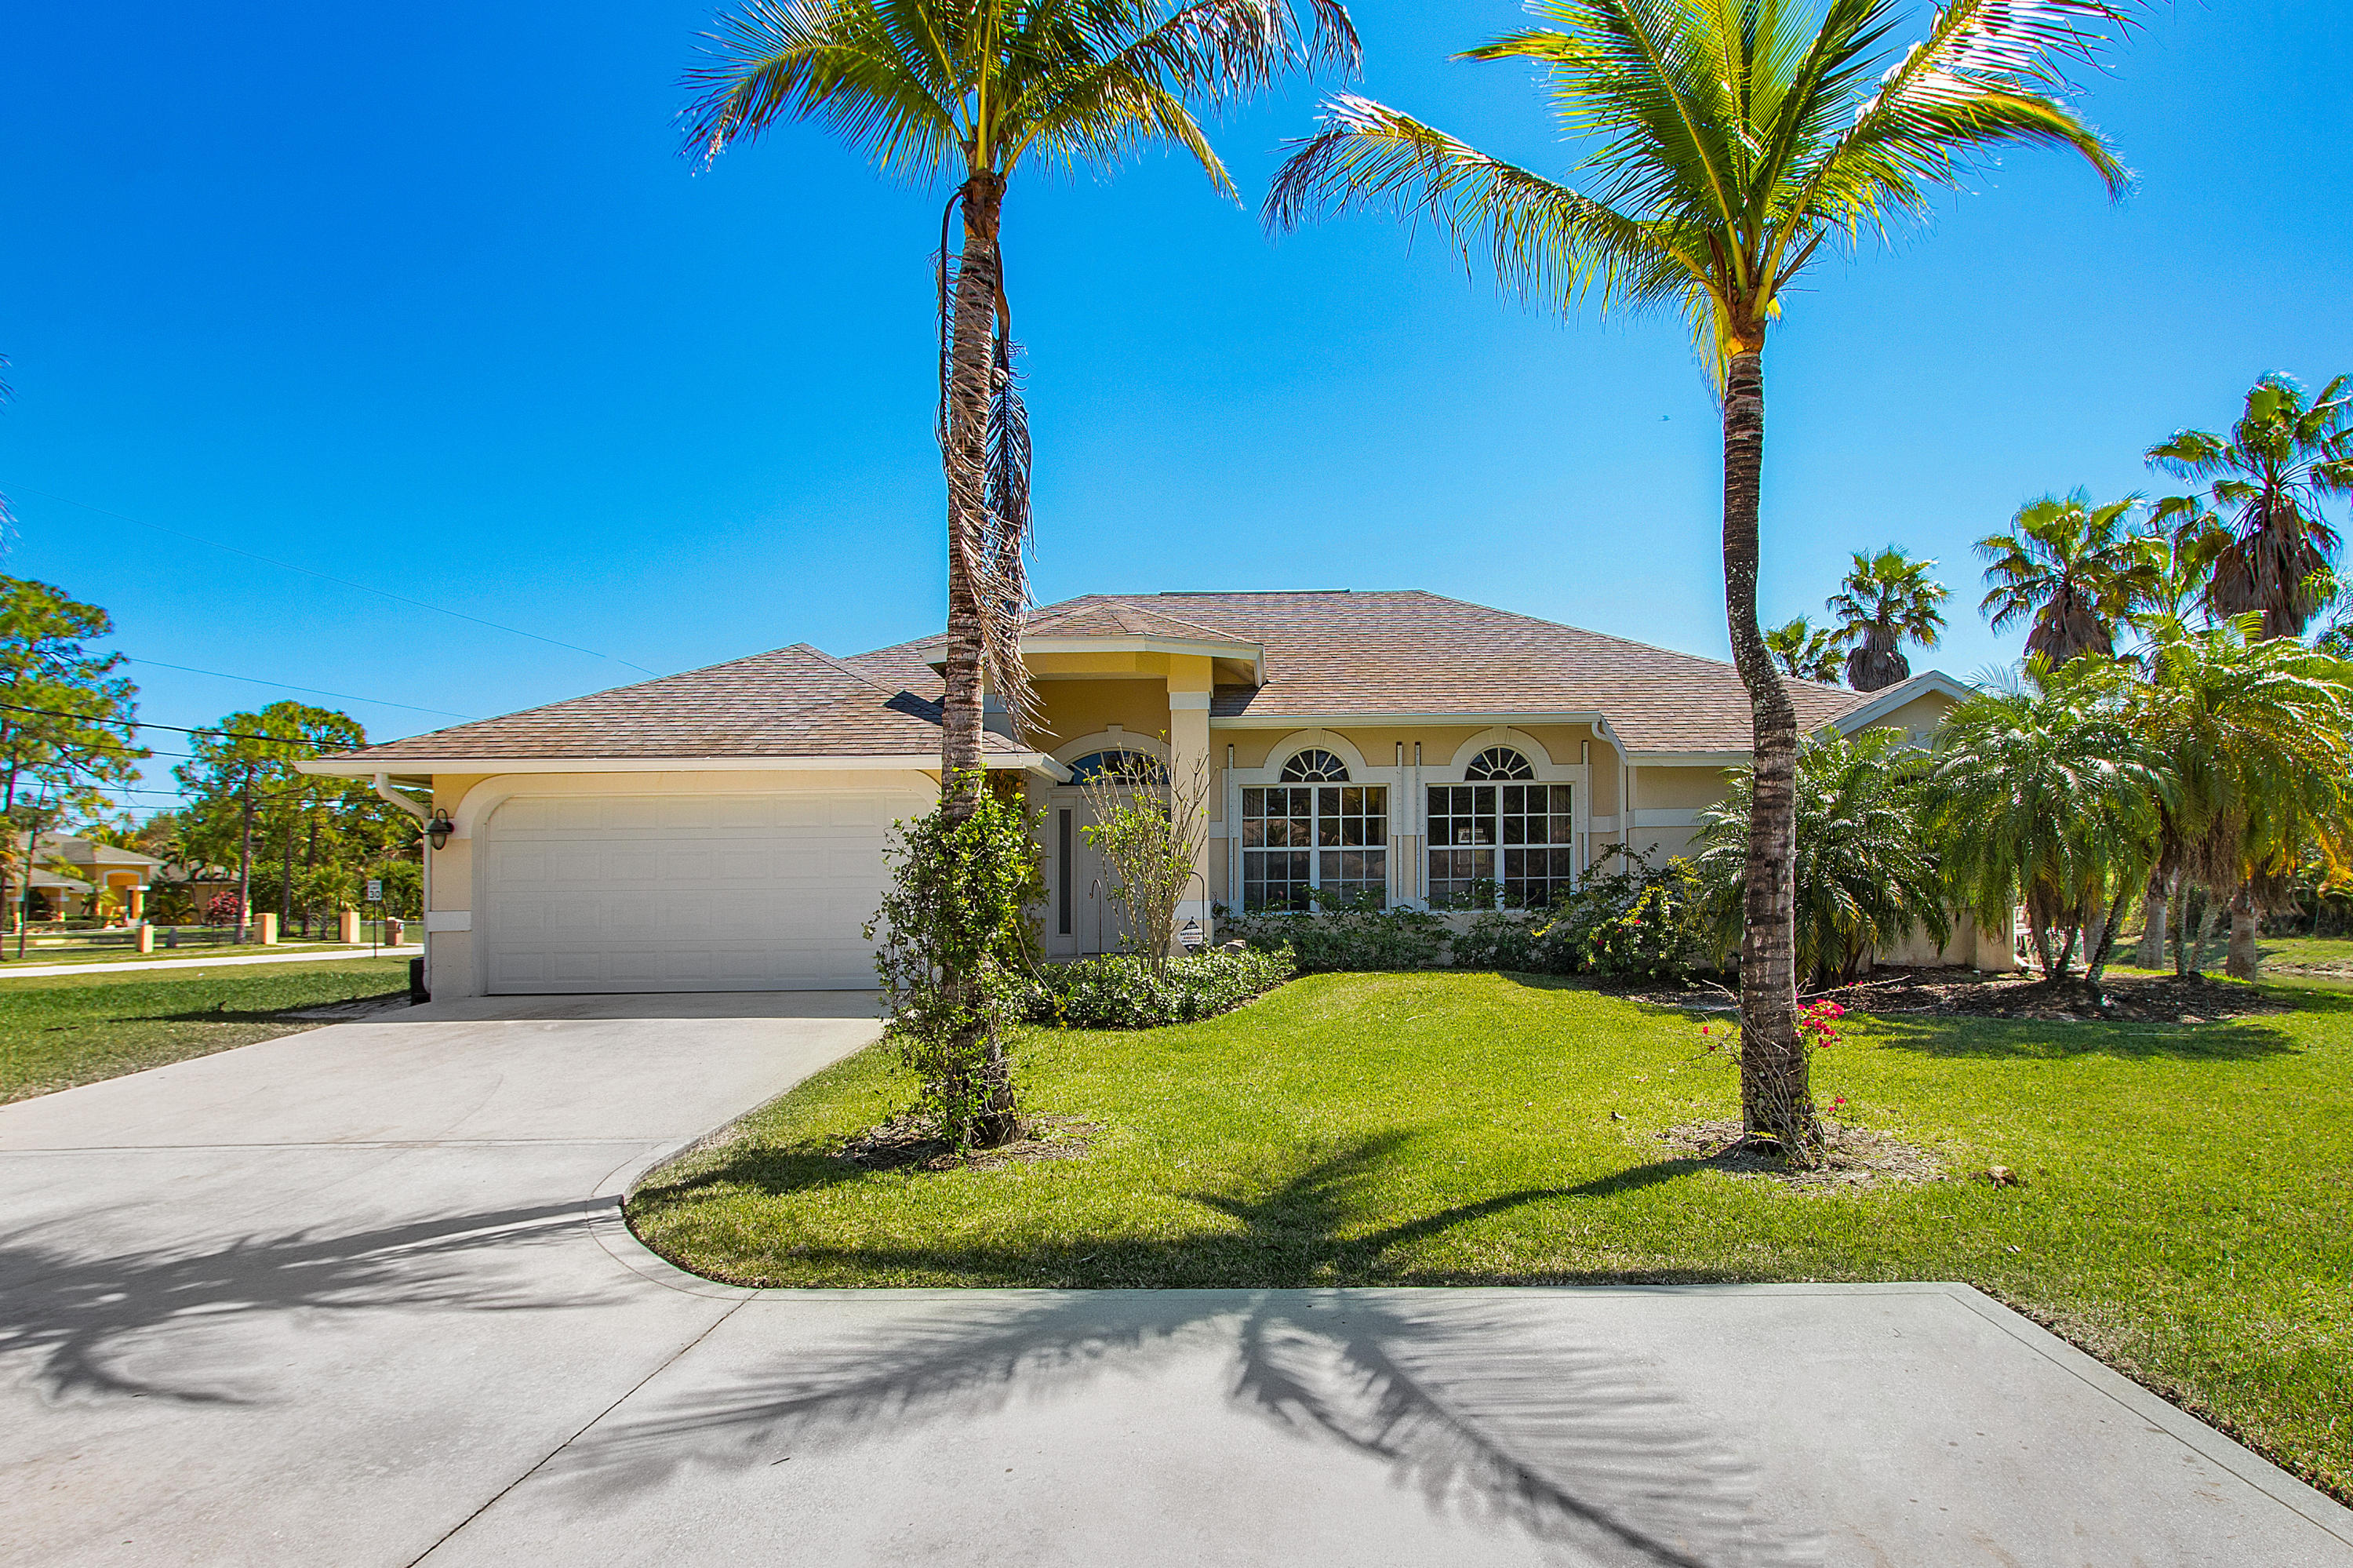 8442 Coconut Boulevard, The Acreage, FL 33470